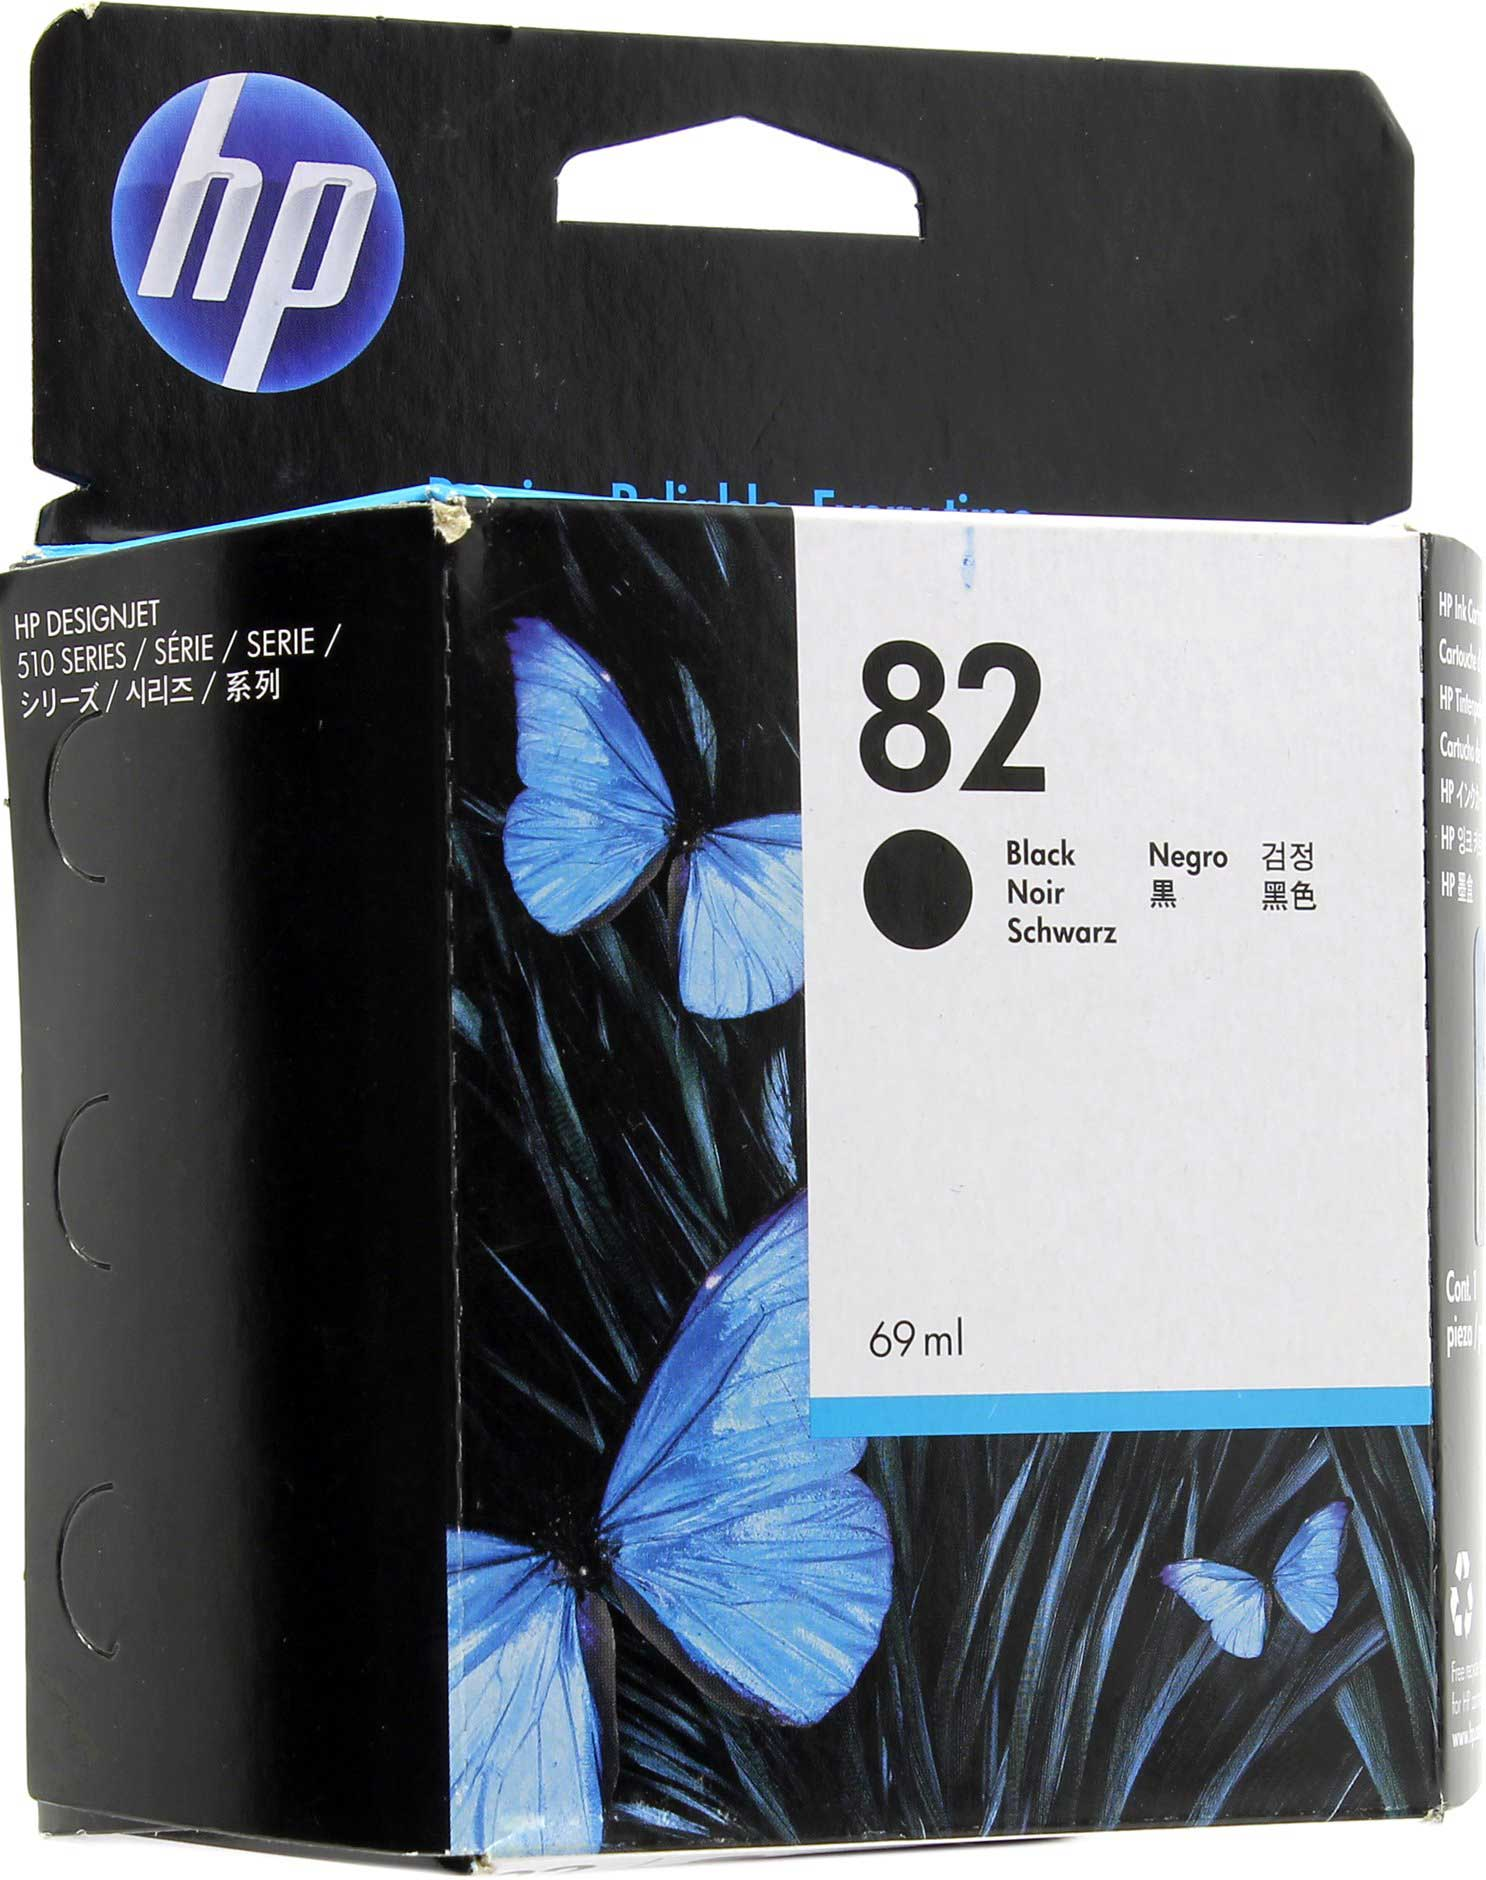 Картридж HP CH565A Black Ink Cartridge №82 for DesignJet 510, 69 ml.